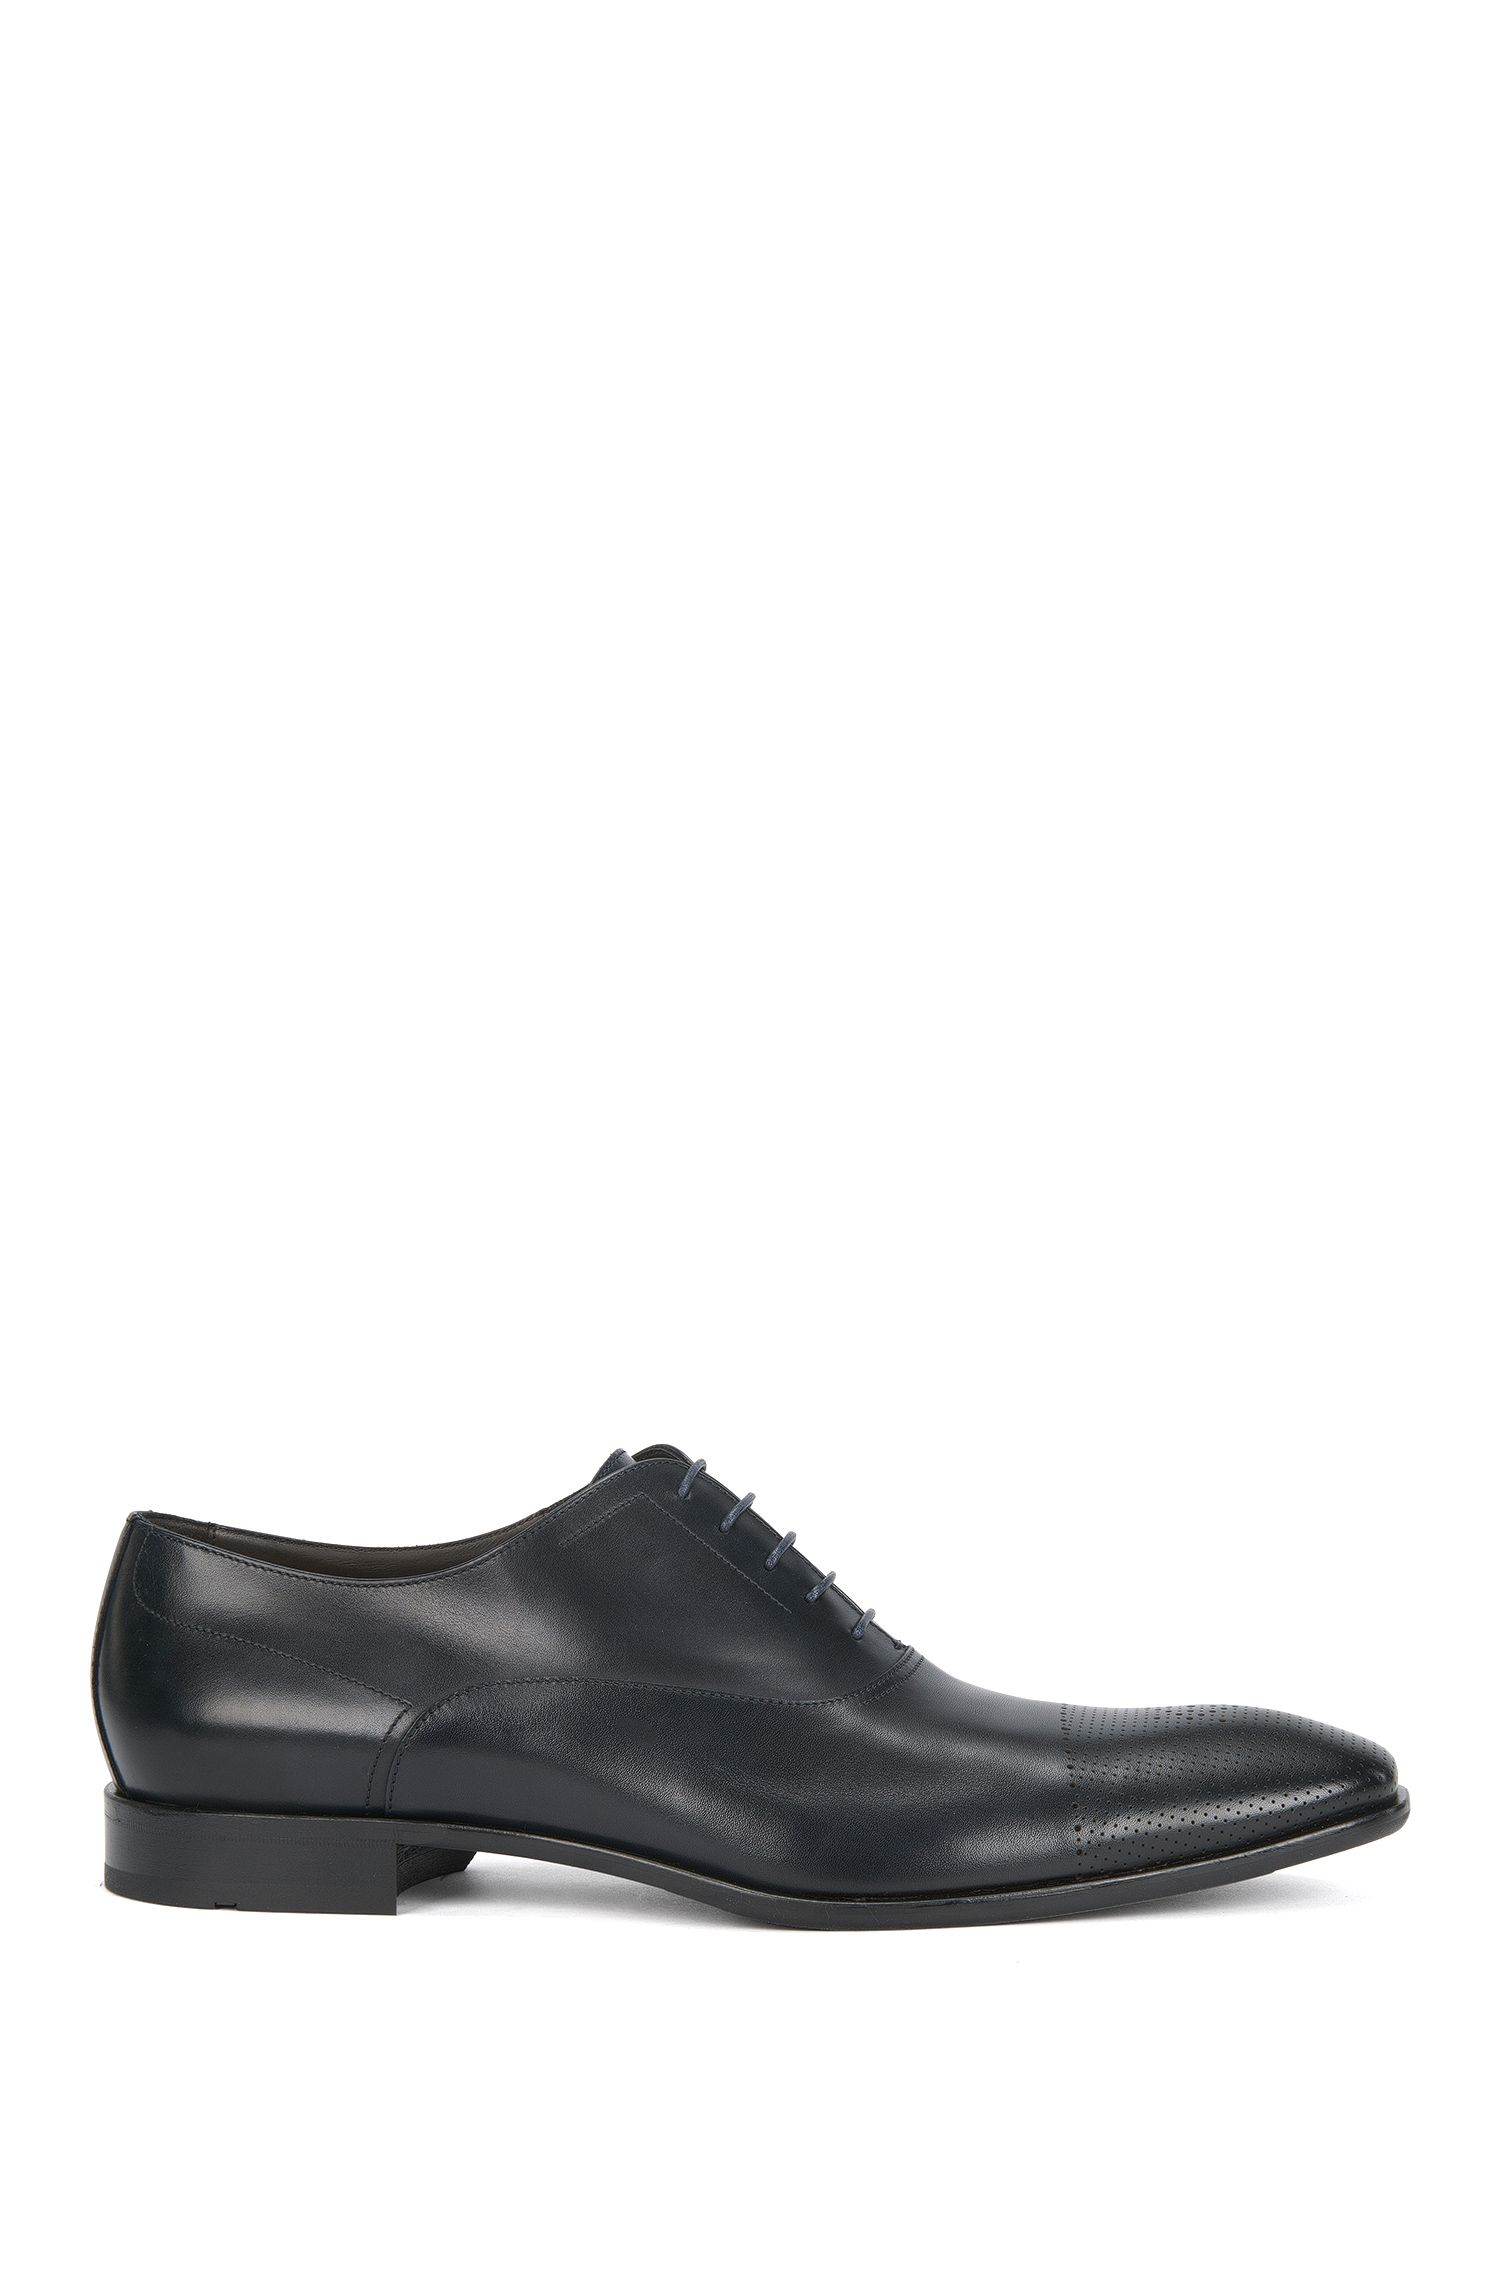 Perforated Italian Calfskin Oxford Dress Shoe | Chelsea Oxfr Ctls